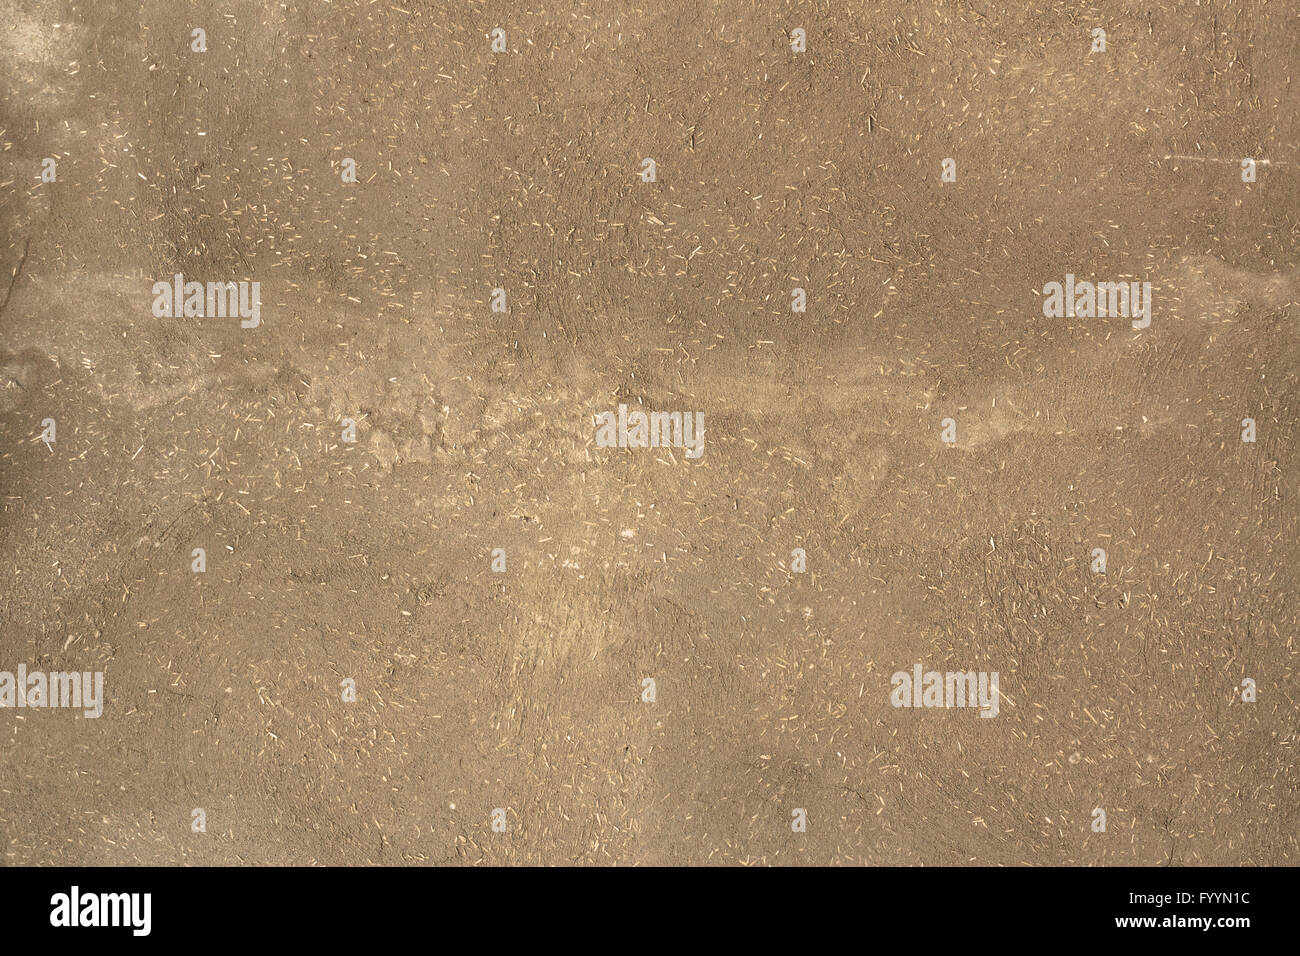 Background clay - Stock Image